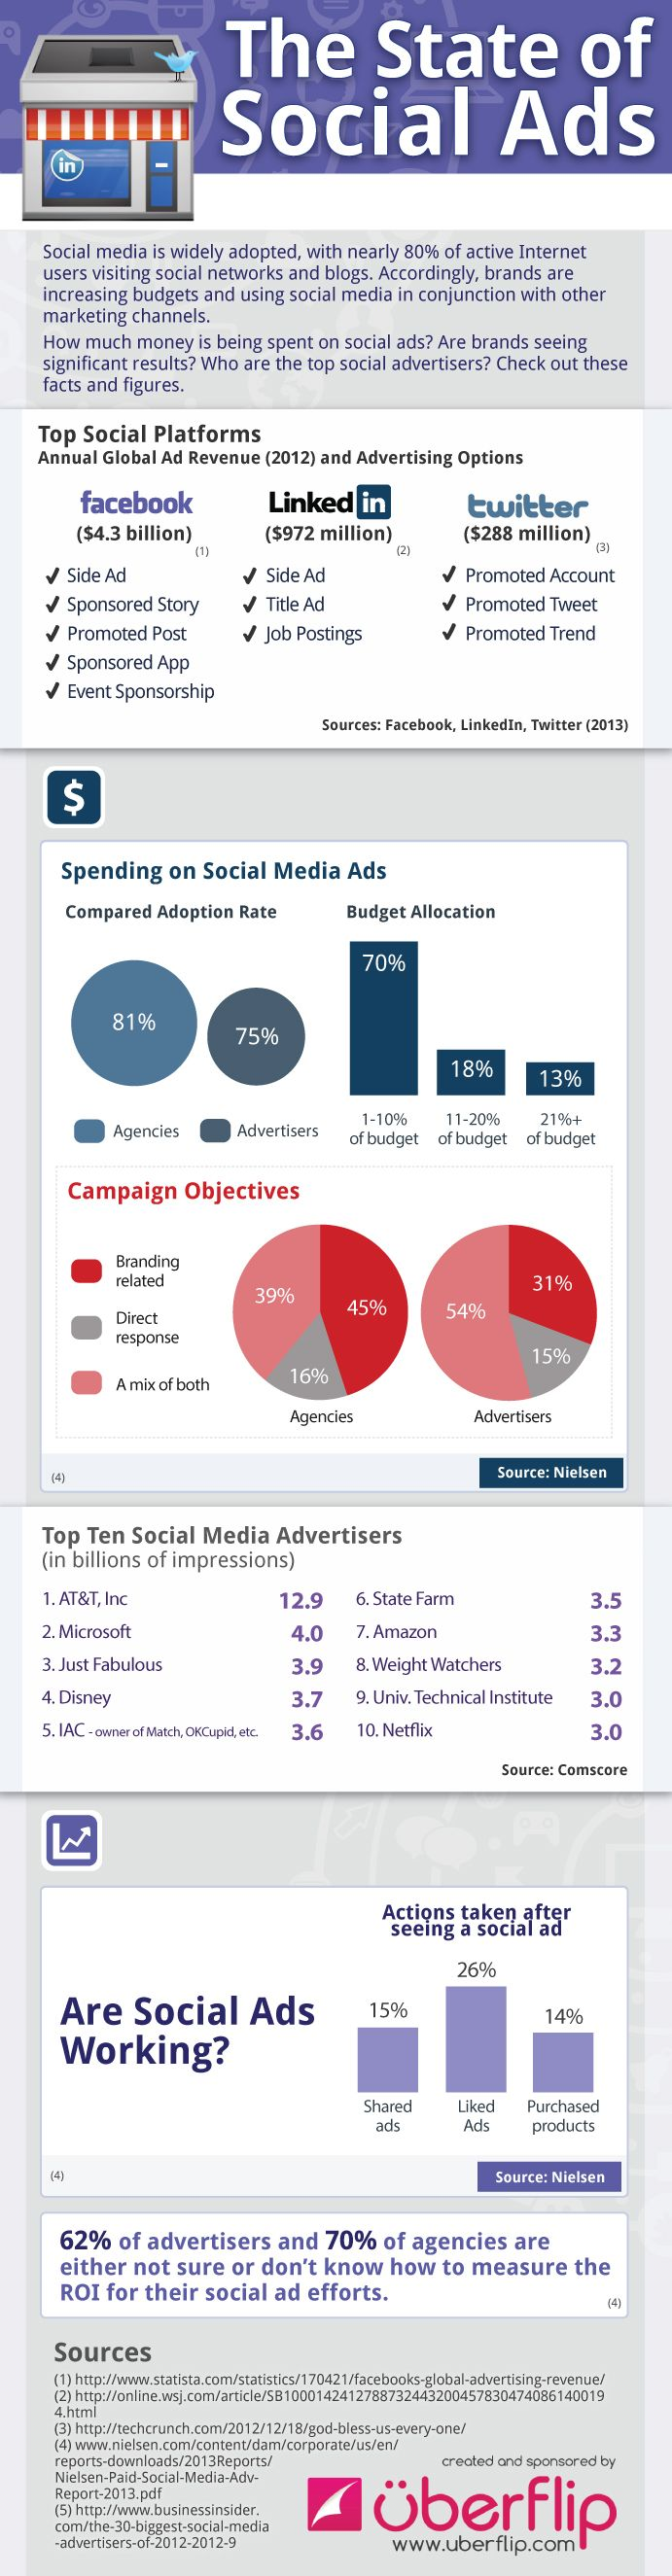 The State Of Social Ads [INFOGRAPHIC]Social Network,  Internet Site, Social Ads,  Website, Web Site, Social Media, Infographic, Socialmedia, Media Ads